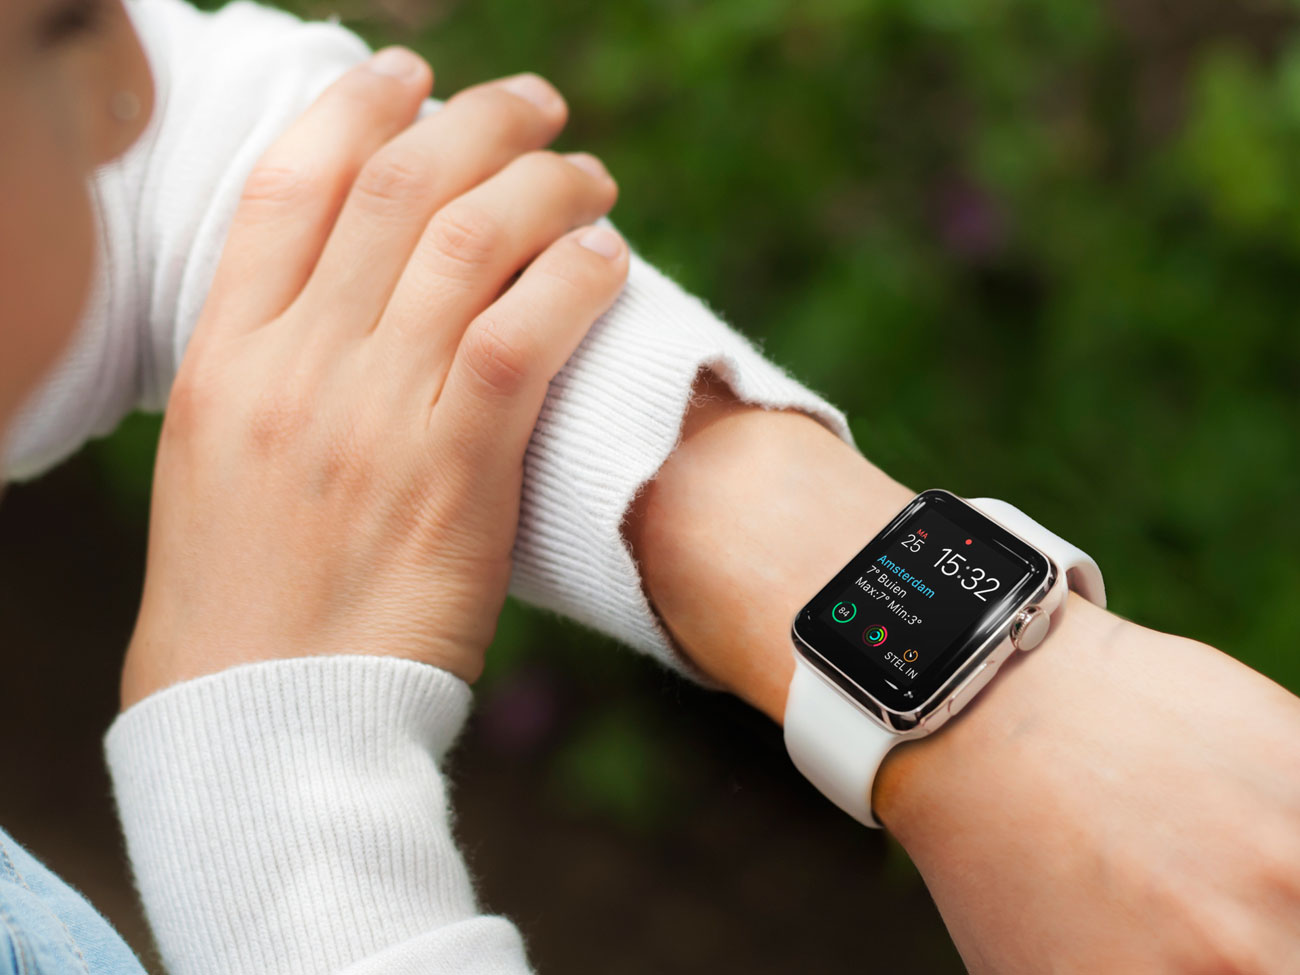 Apple Watch-wijzerplaat van Gonny